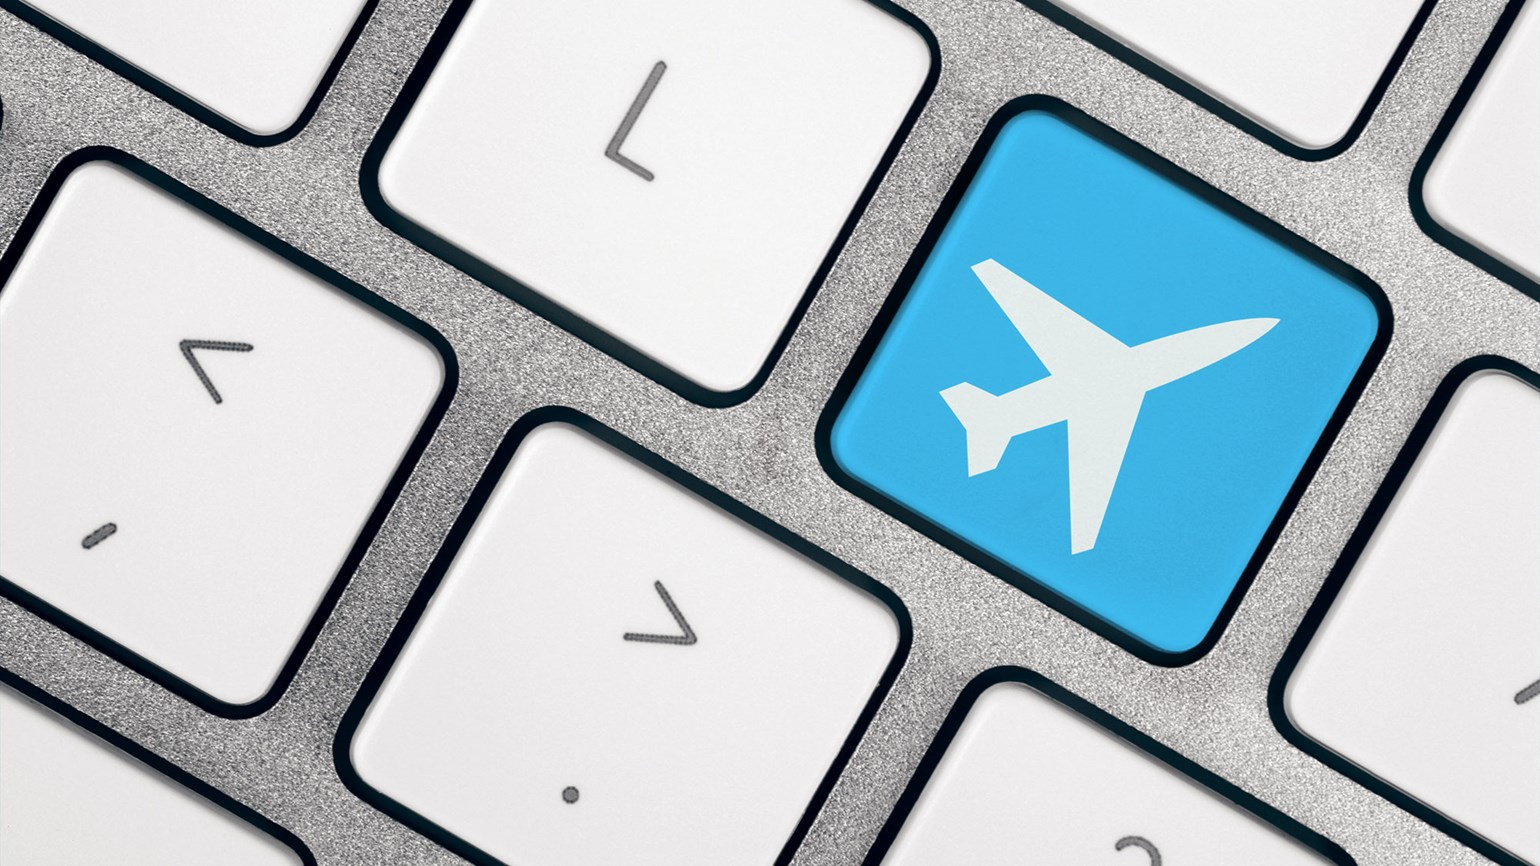 Online air booking [Credit: Hidesy/Shutterstock.com]